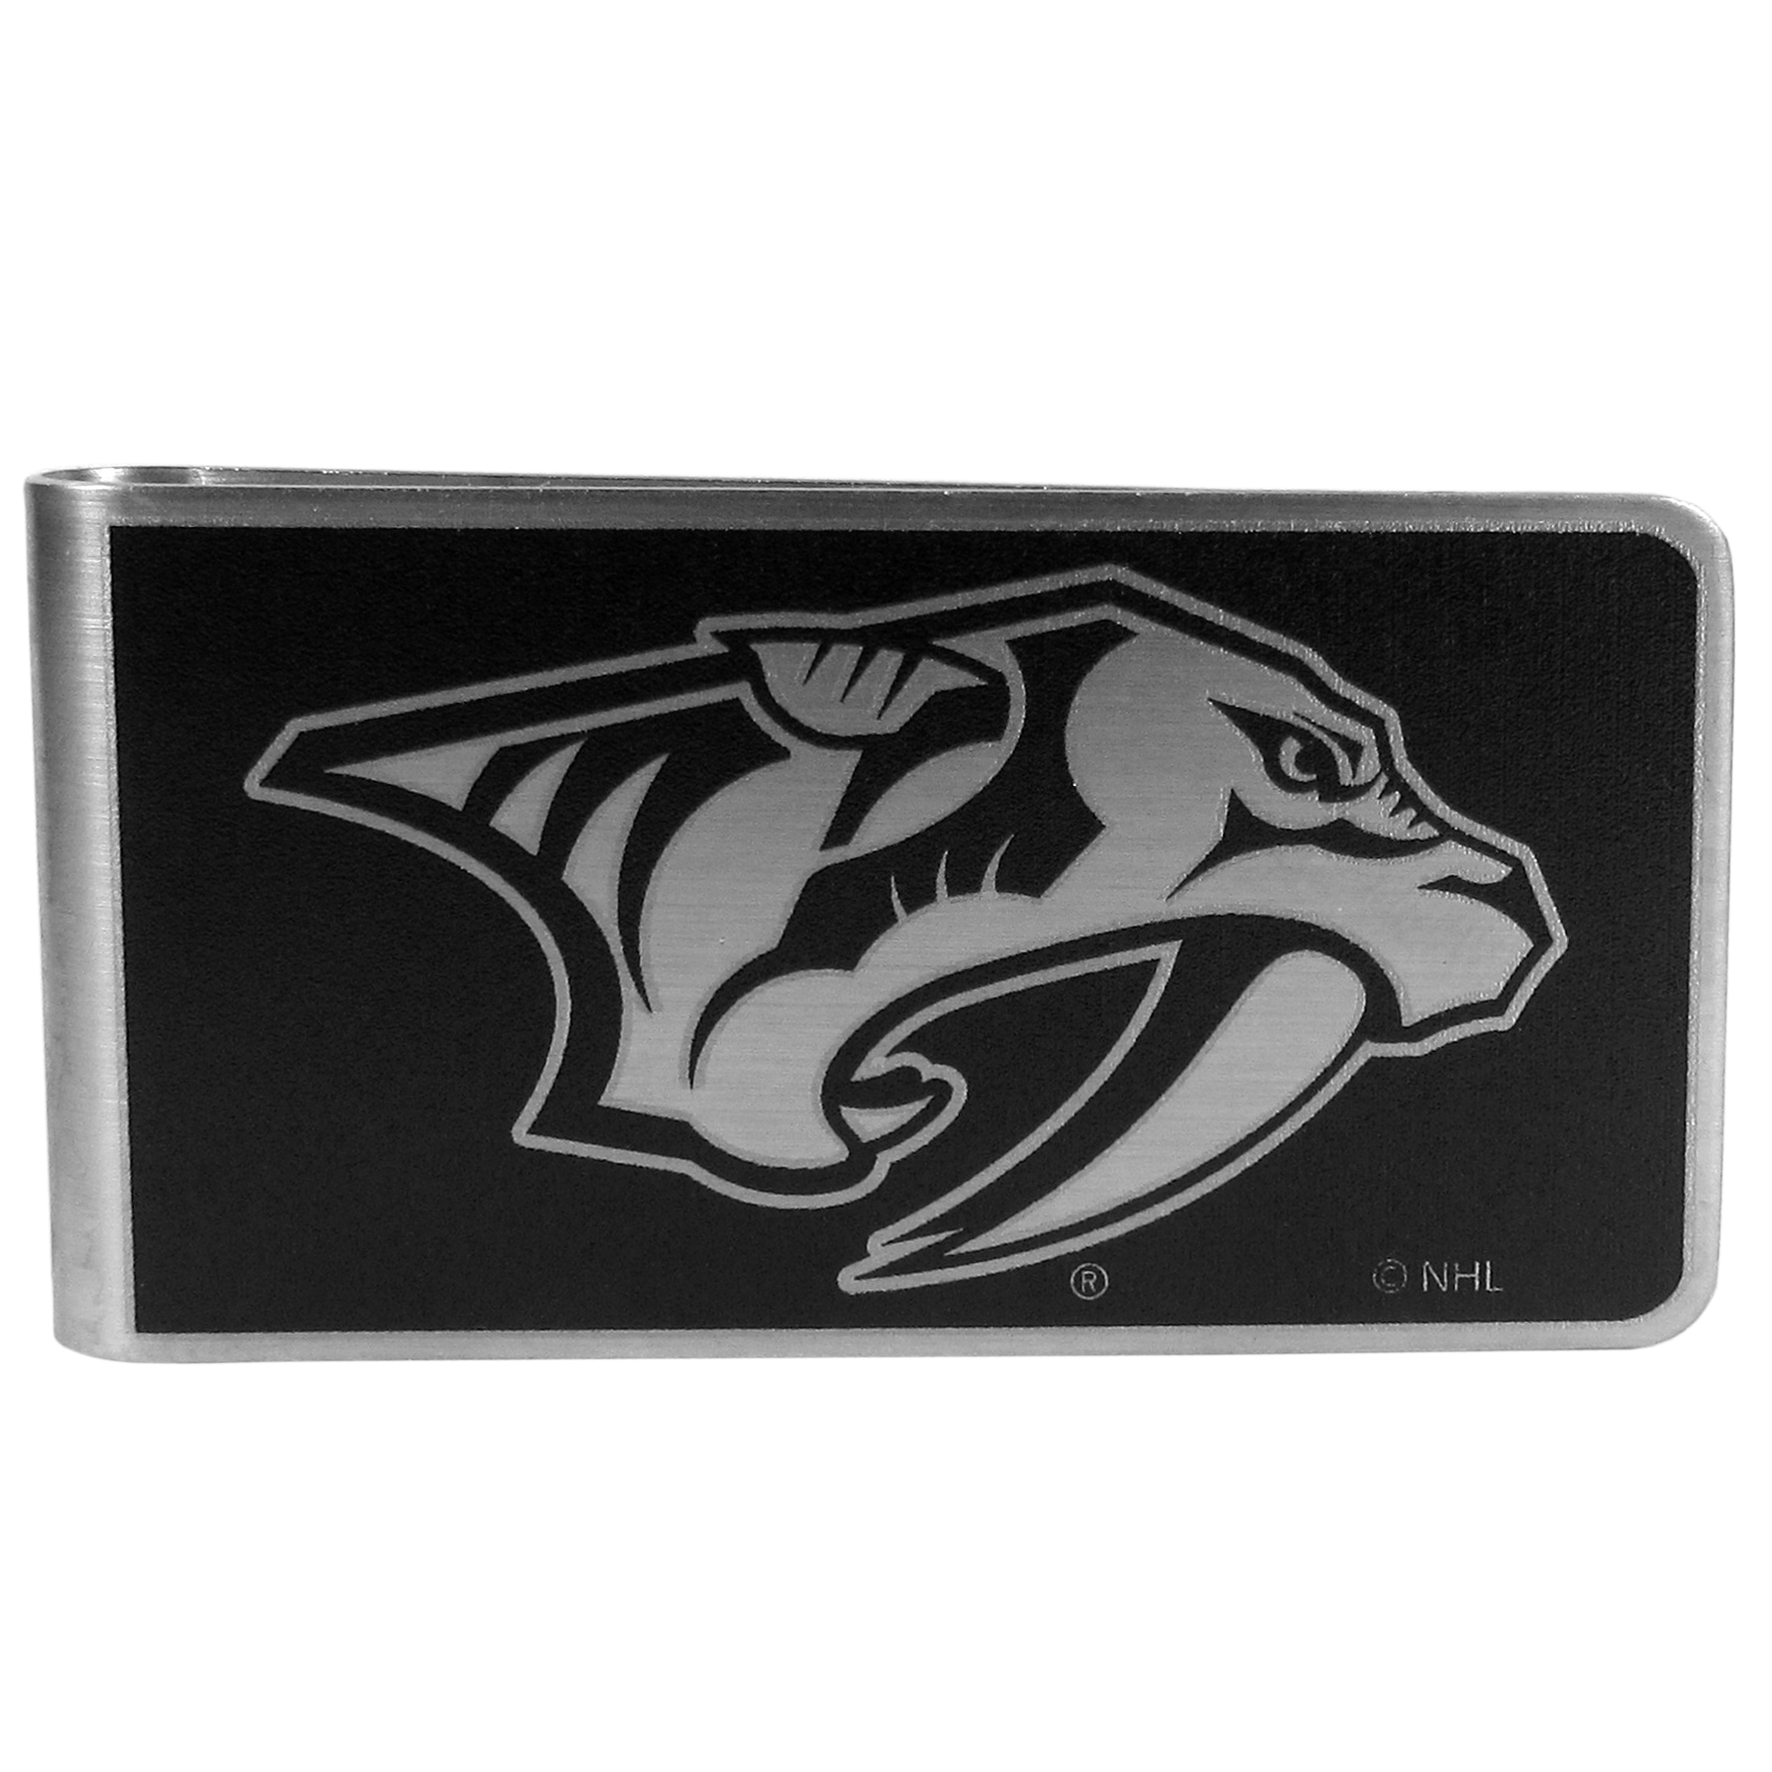 Nashville Predators® Black and Steel Money Clip - Our monochromatic steel money clips have a classic style and superior quality. The strong, steel clip has a black overlay of the Nashville Predators® logo over the brushed metal finish creating a stylish men's fashion accessory that would make any fan proud.